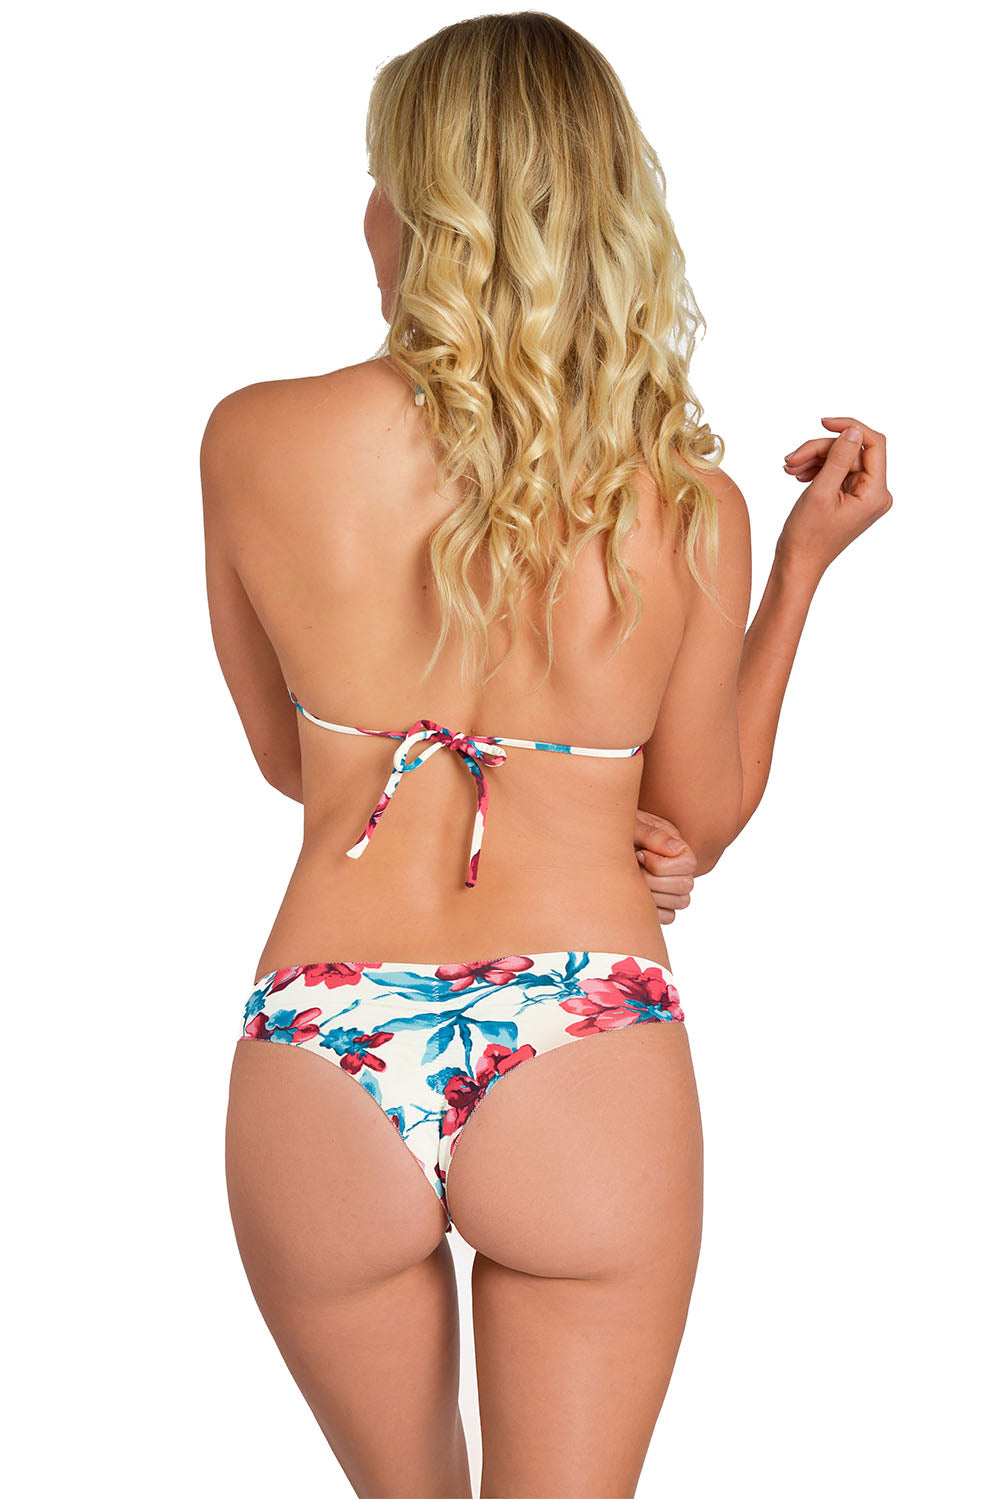 Amazon Flower Less Coverage Signature Bikini